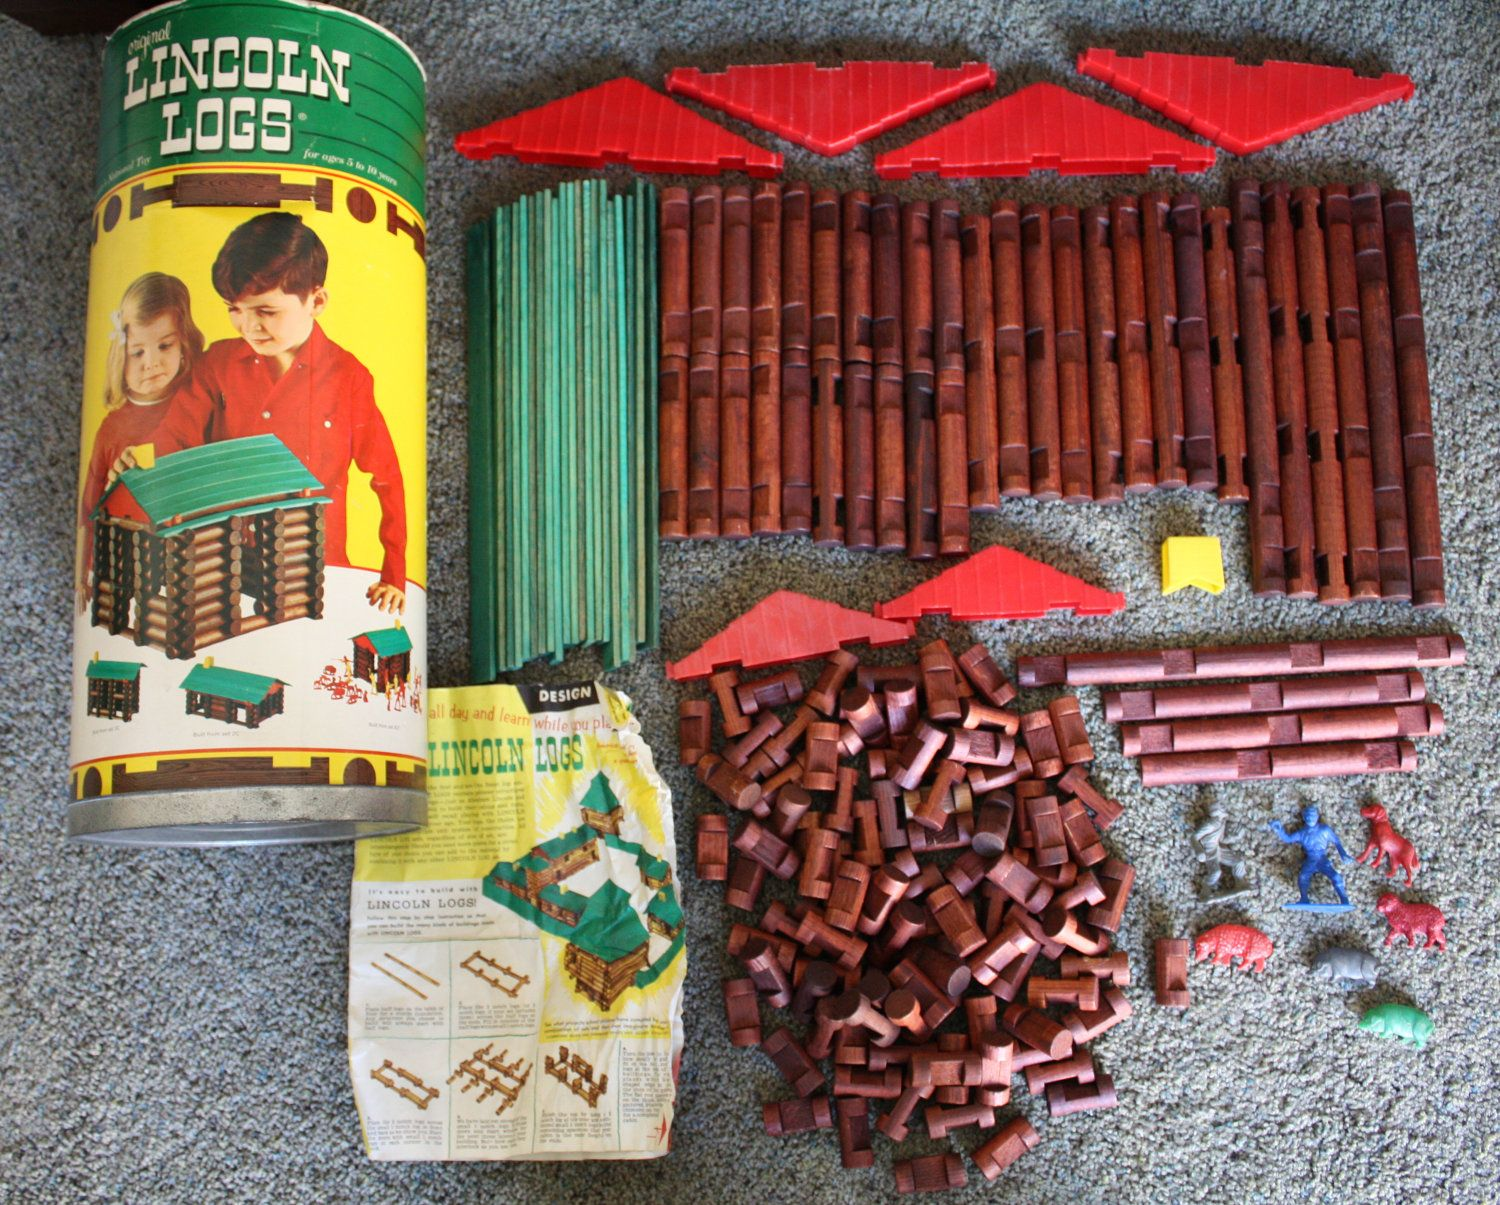 Lincoln Logs, just as remembered! Growing up in the 70s